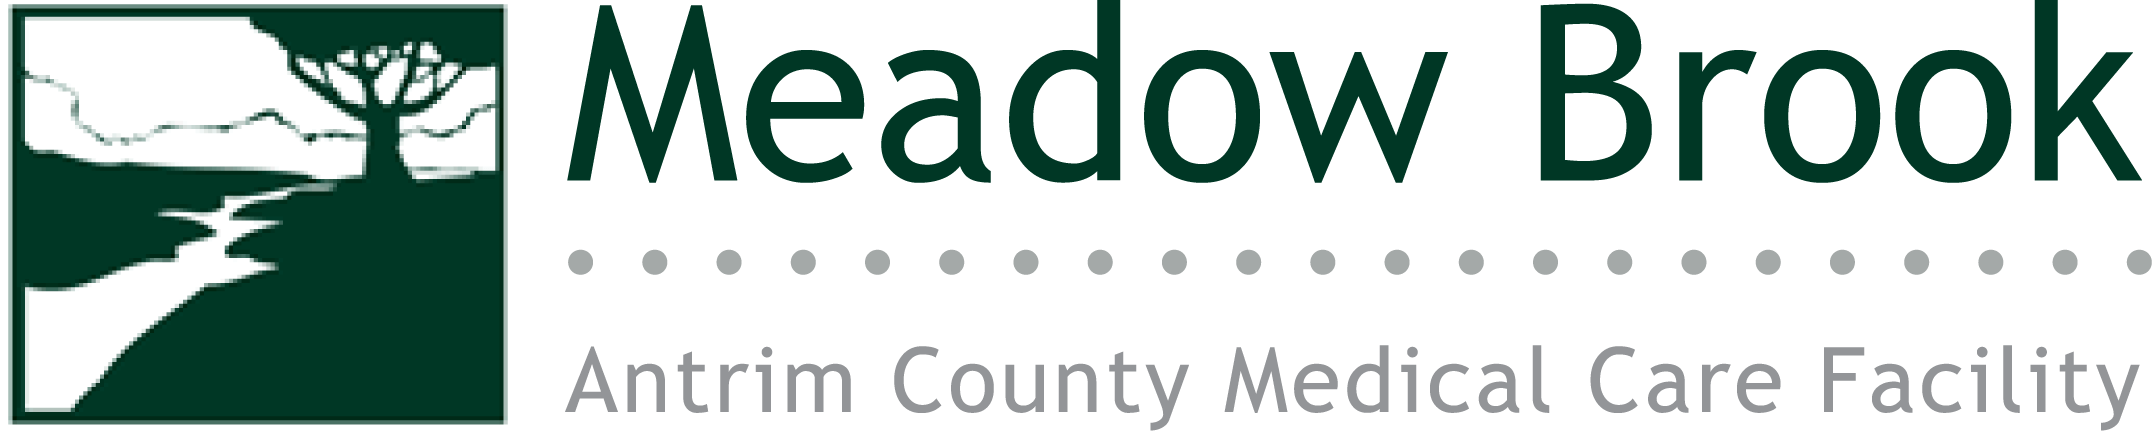 Meadow Brook Antrim County Medical Care Facility